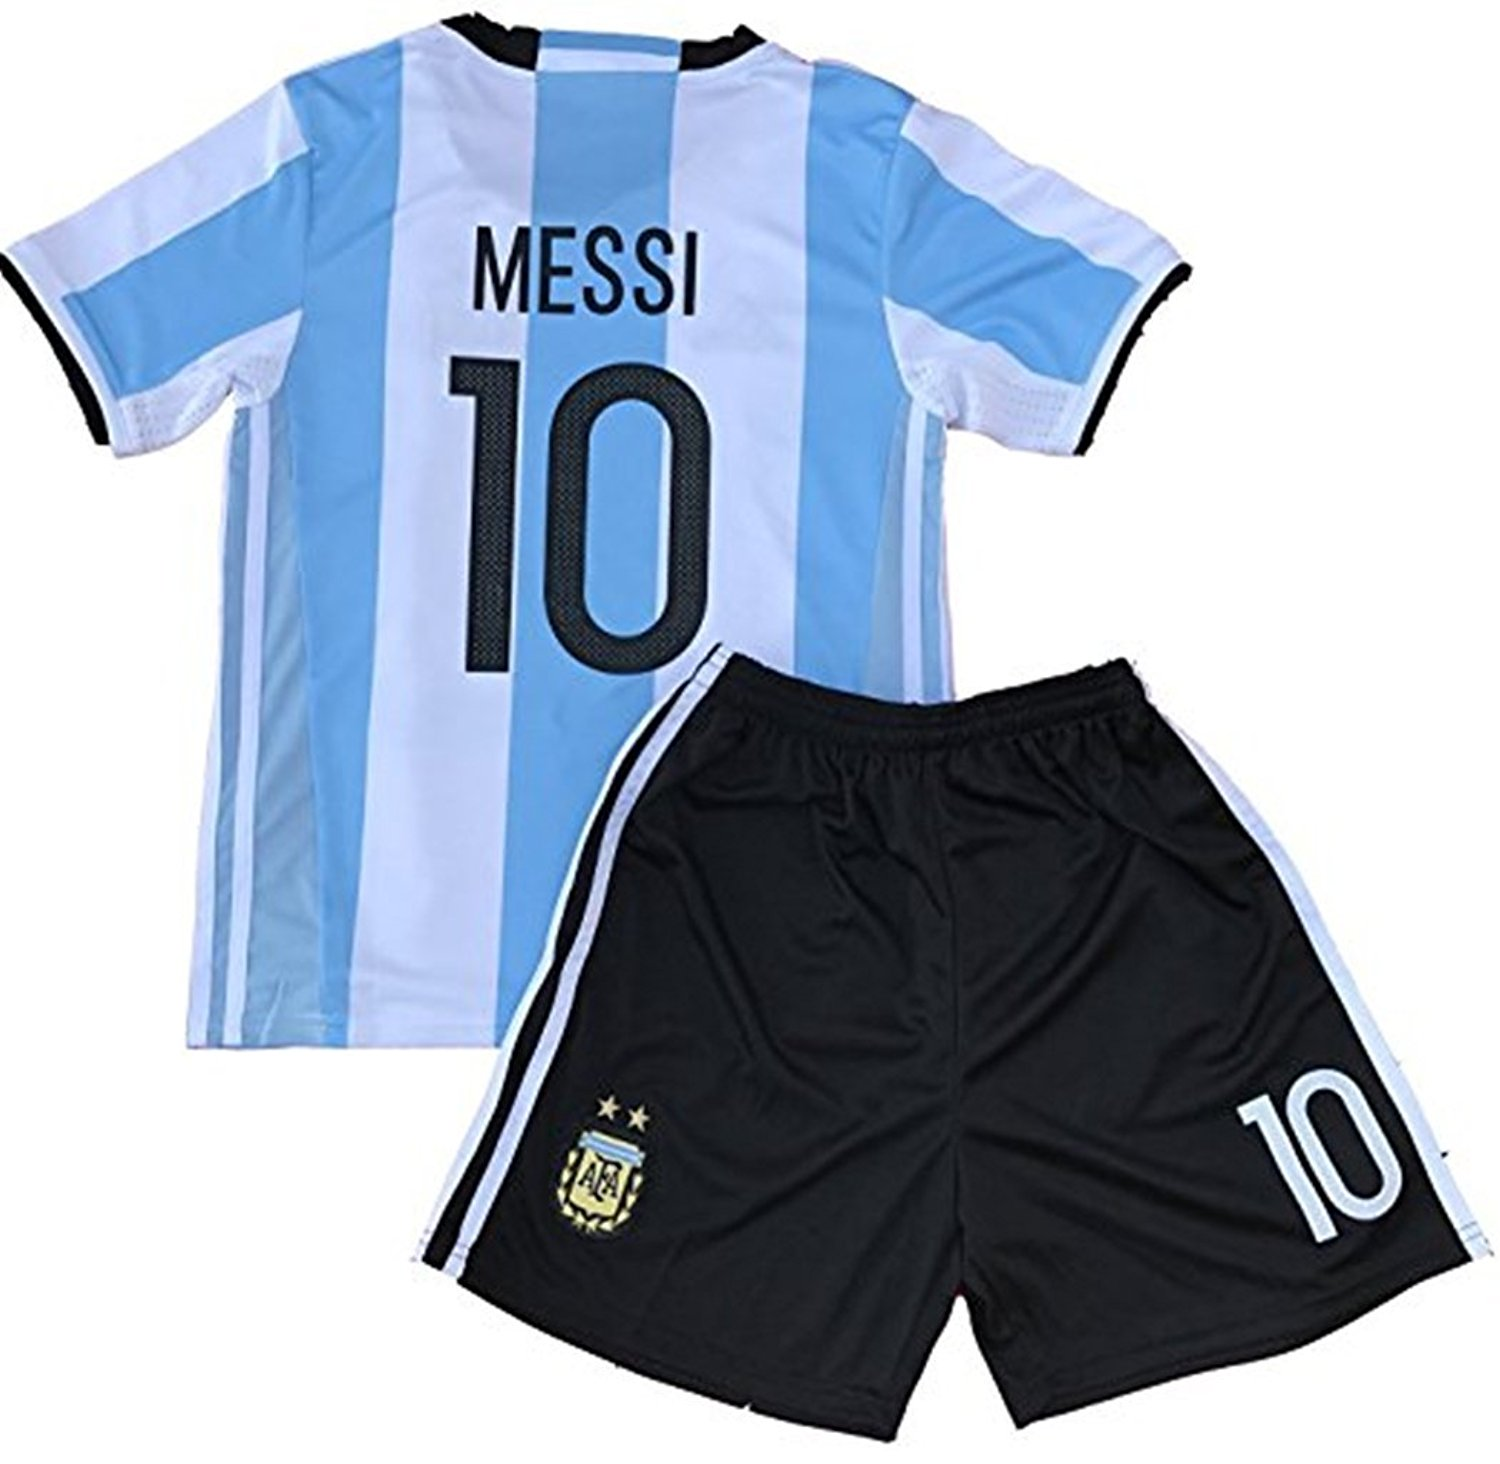 size 40 71ba7 0c920 Cheap Argentina Youth Jersey, find Argentina Youth Jersey ...